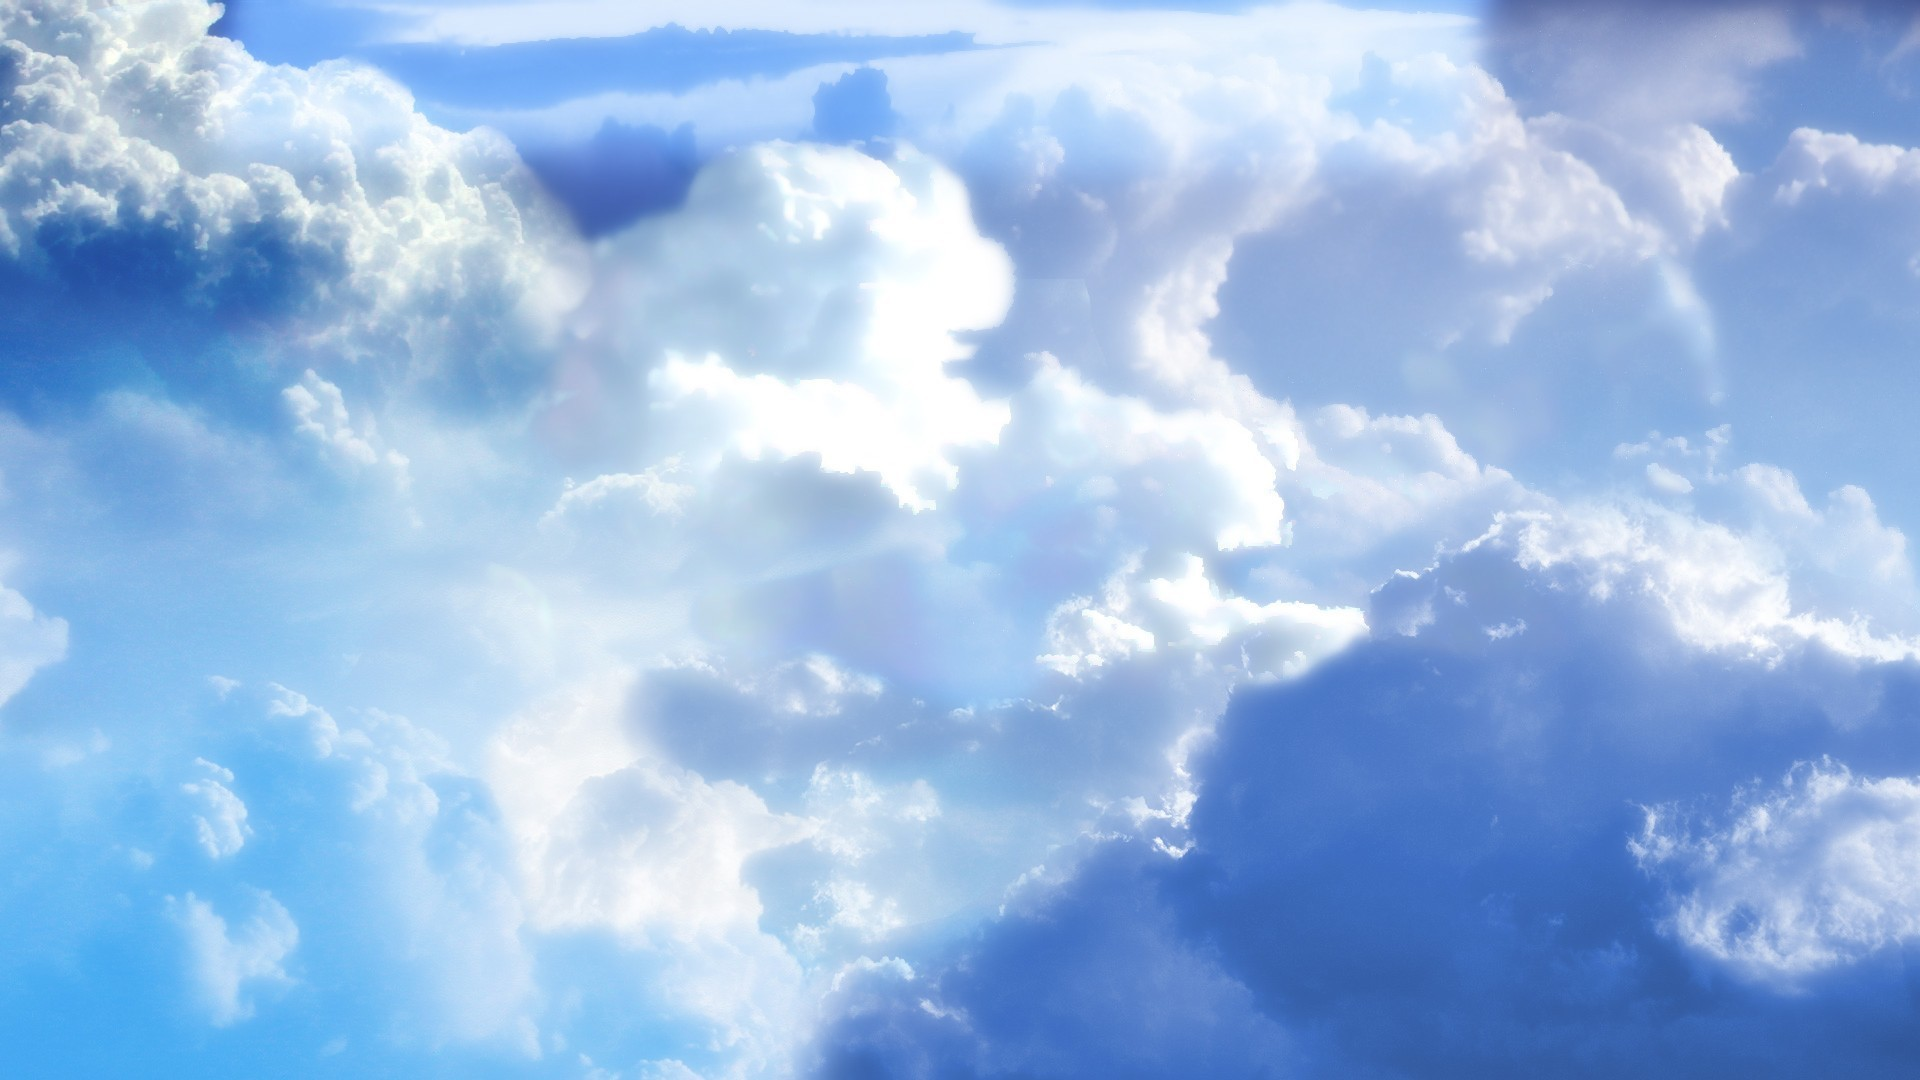 Blue Sky With Clouds Wallpaper (56+ images)